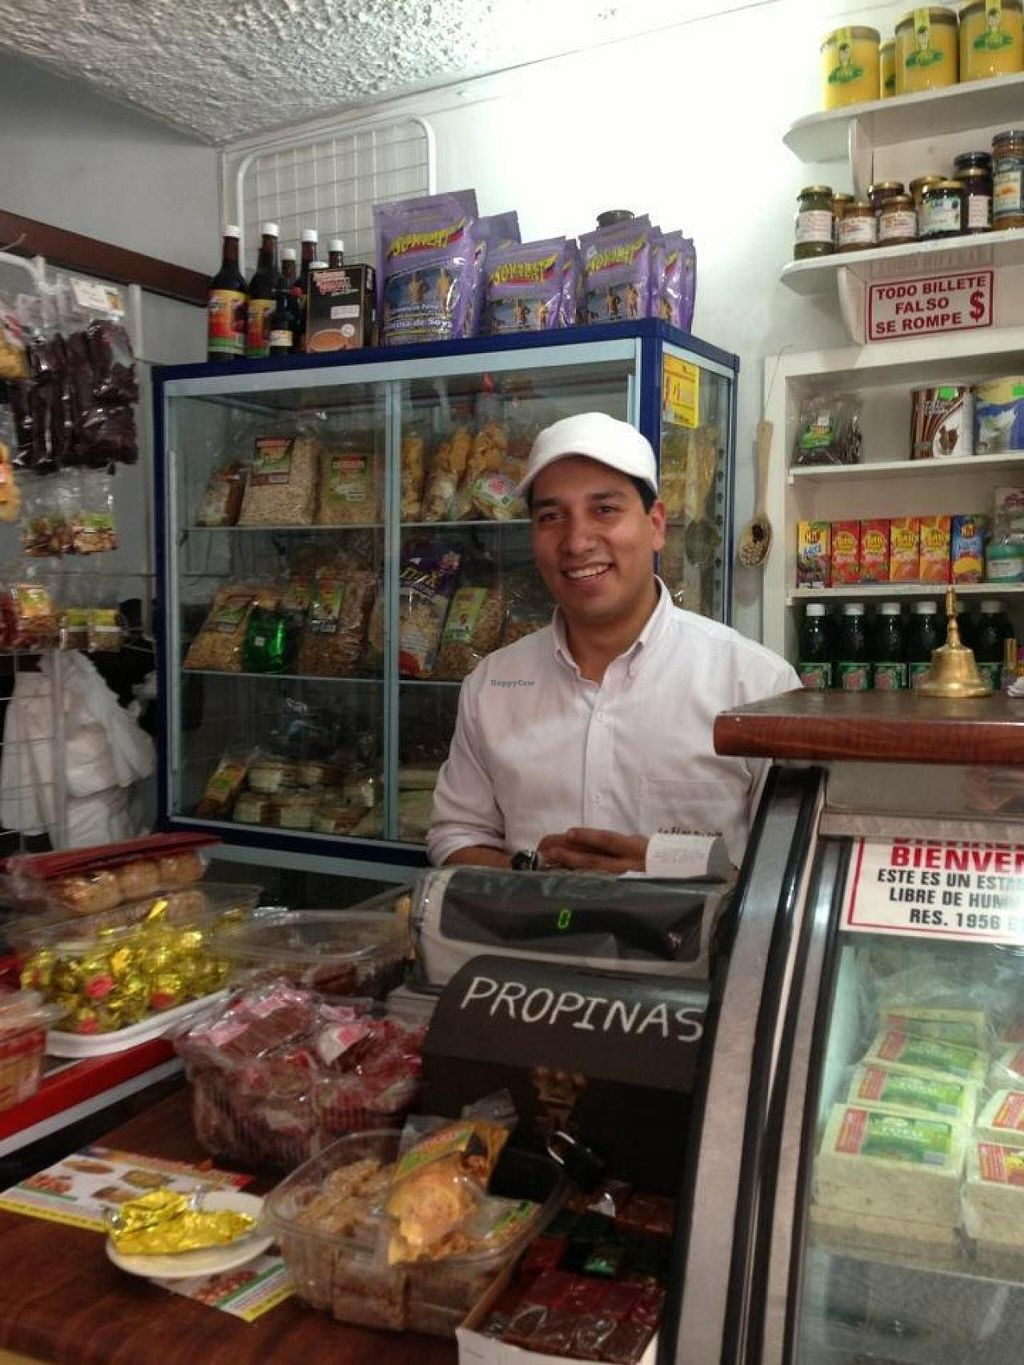 """Photo of Flor de Loto  by <a href=""""/members/profile/davidayala"""">davidayala</a> <br/>Flor de Loto's friendly staff <br/> April 17, 2014  - <a href='/contact/abuse/image/46551/67817'>Report</a>"""